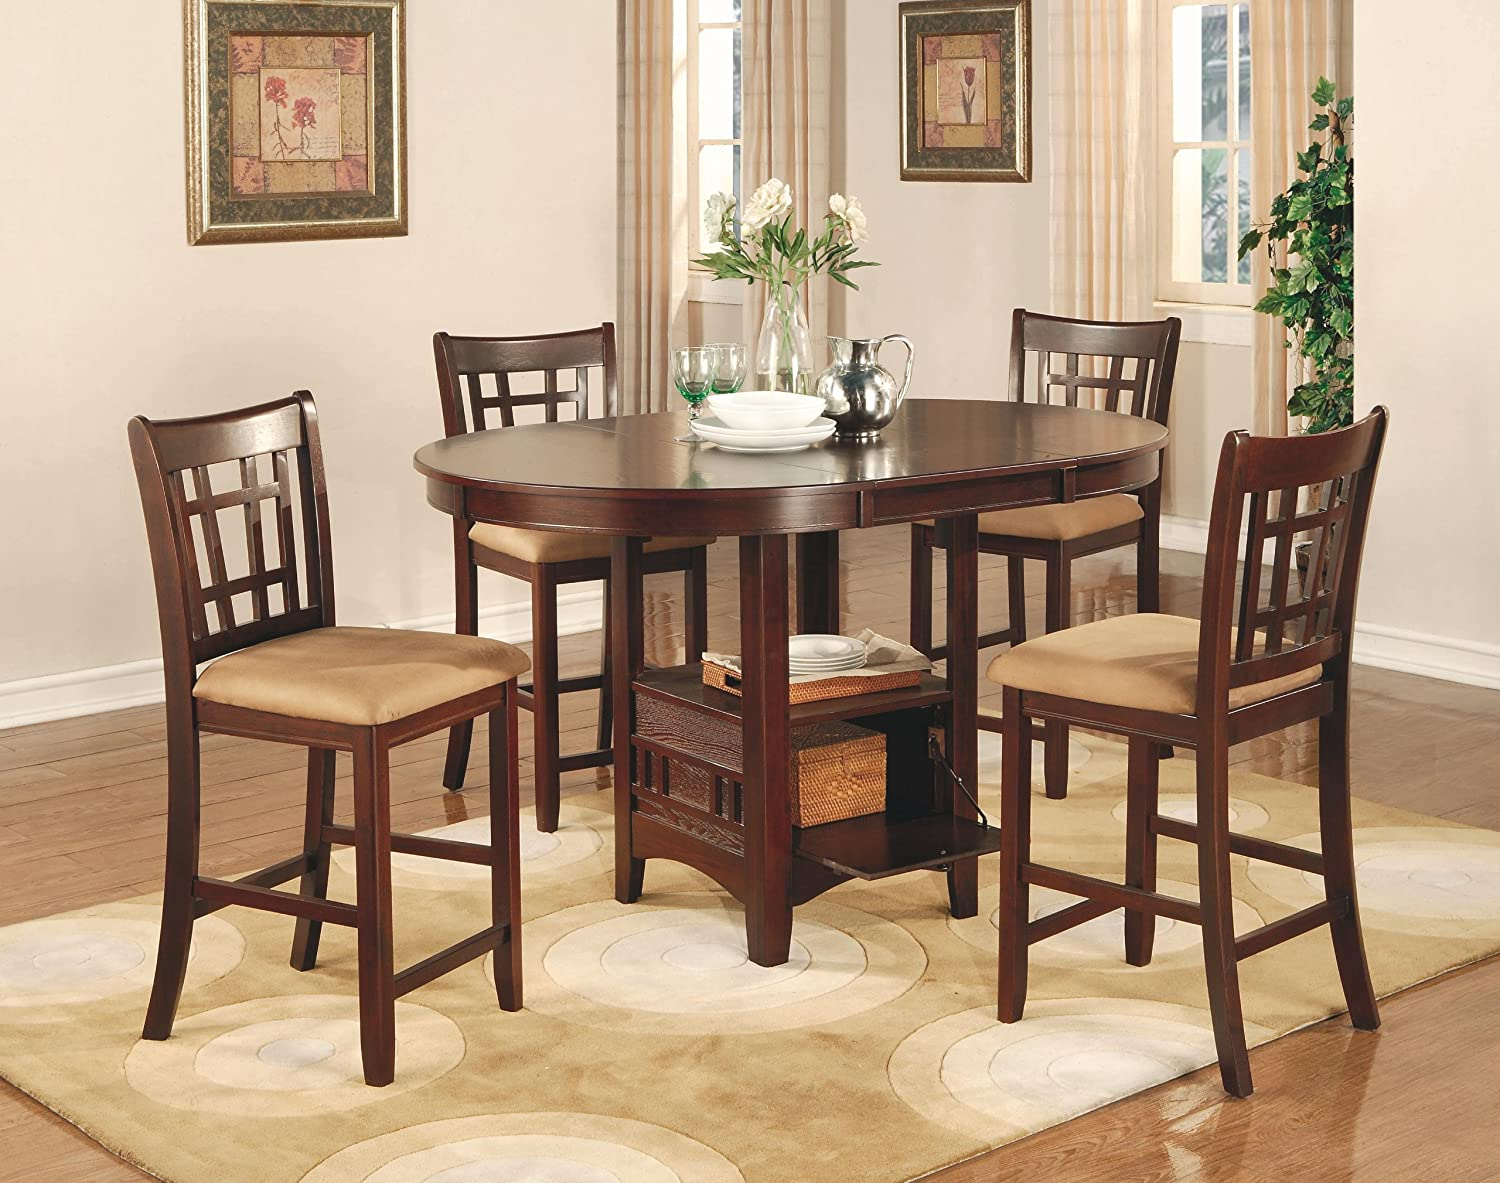 Amazon.com: Coaster Lavon 5 Piece Counter Table And Chair Set In Cherry: Dining  Room Furniture Sets: Kitchen U0026 Dining